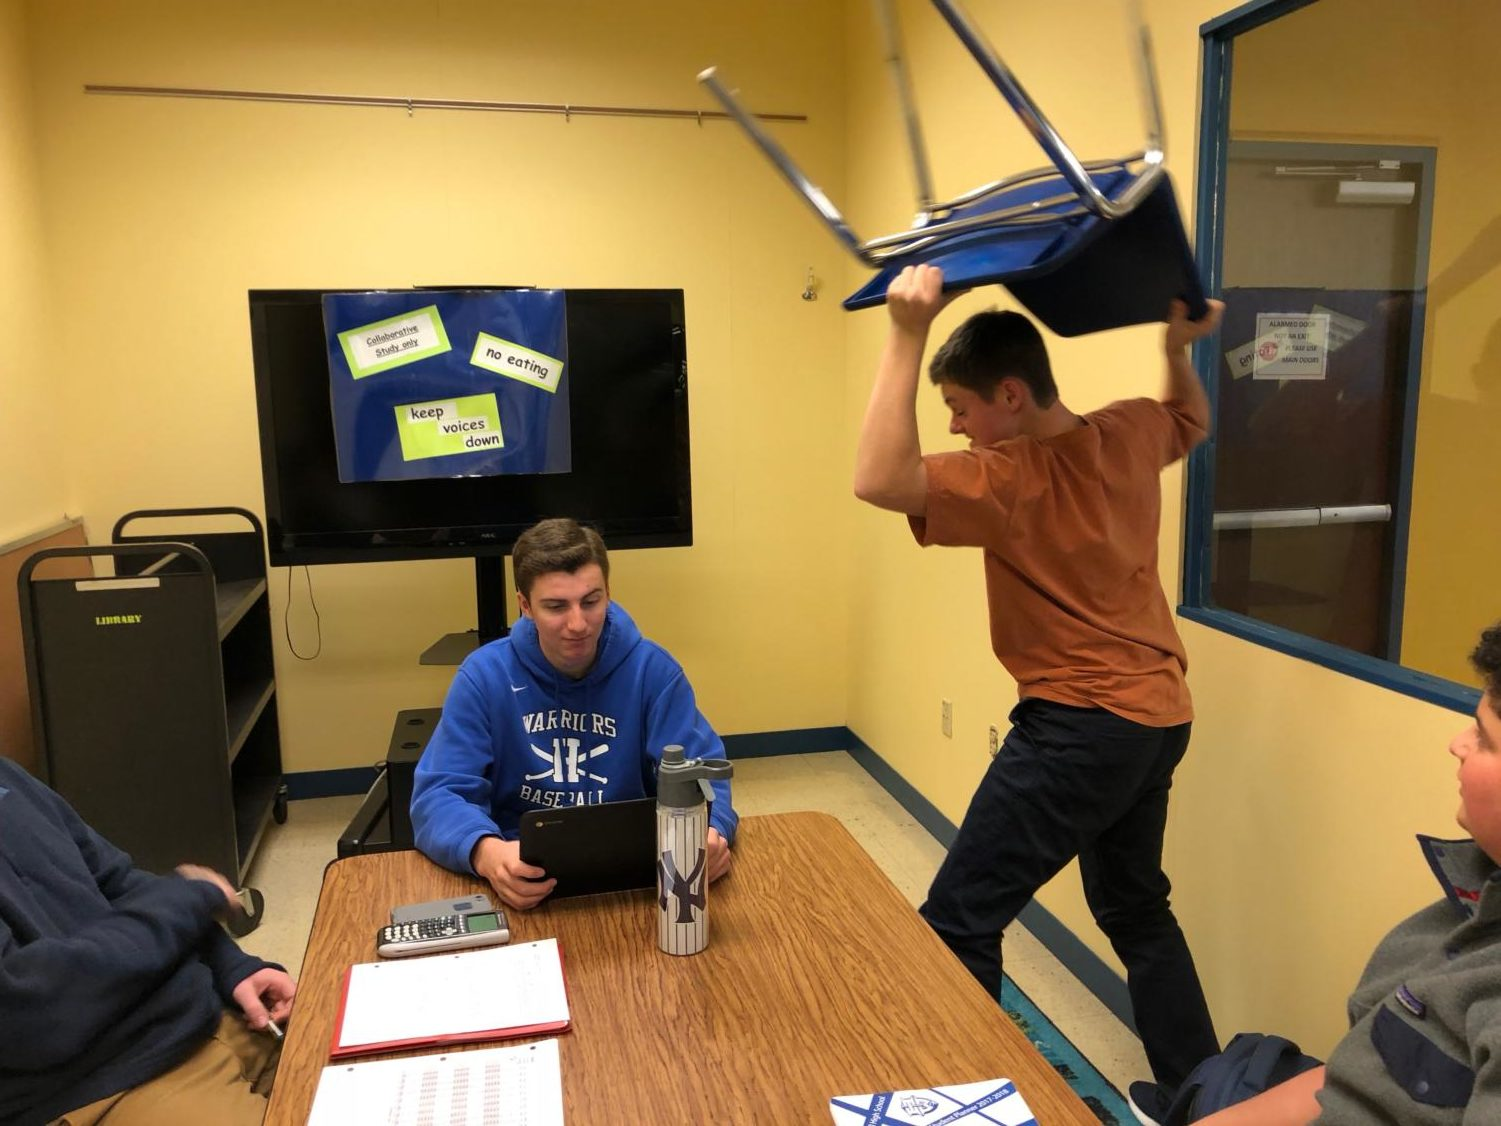 Student throws chair as a result of frustration with library policies.